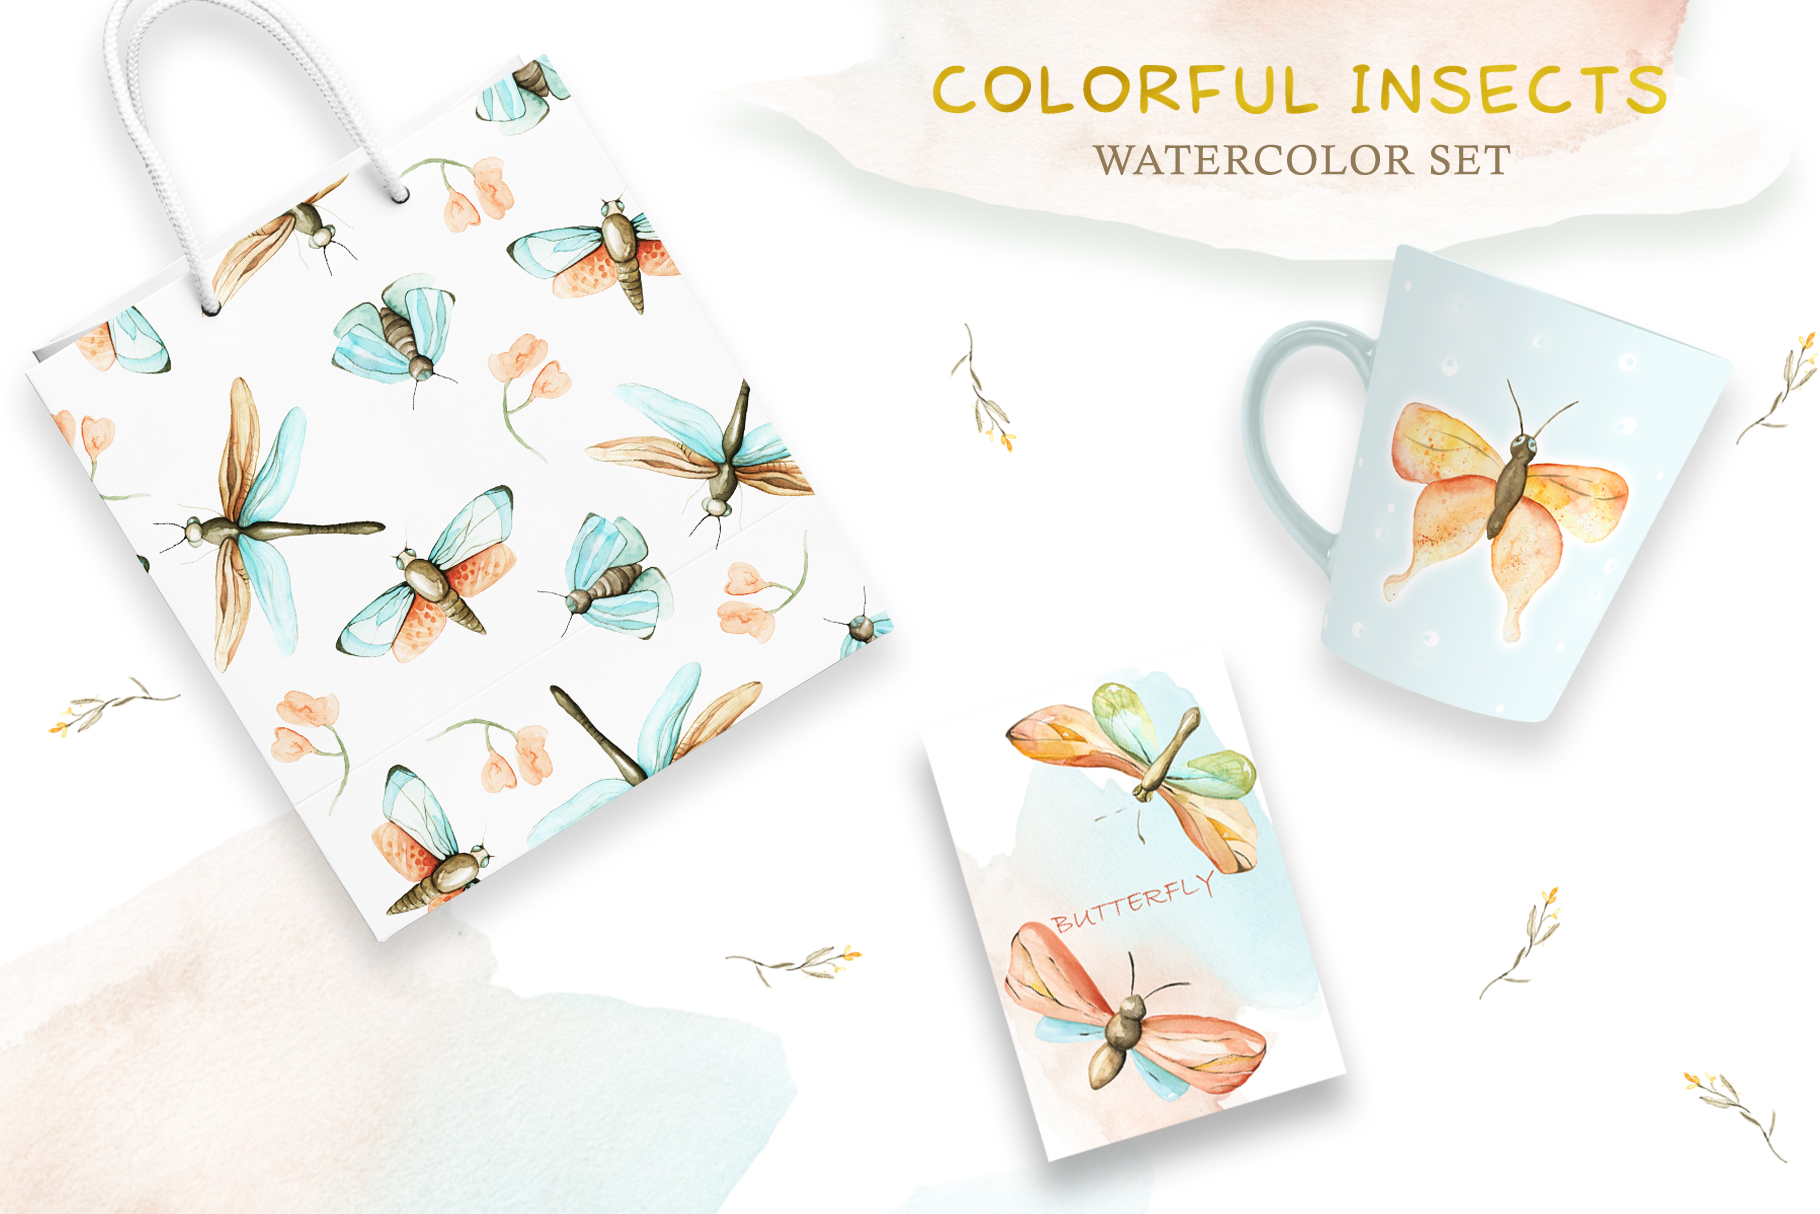 Watercolor Set Colorful Insects example image 4